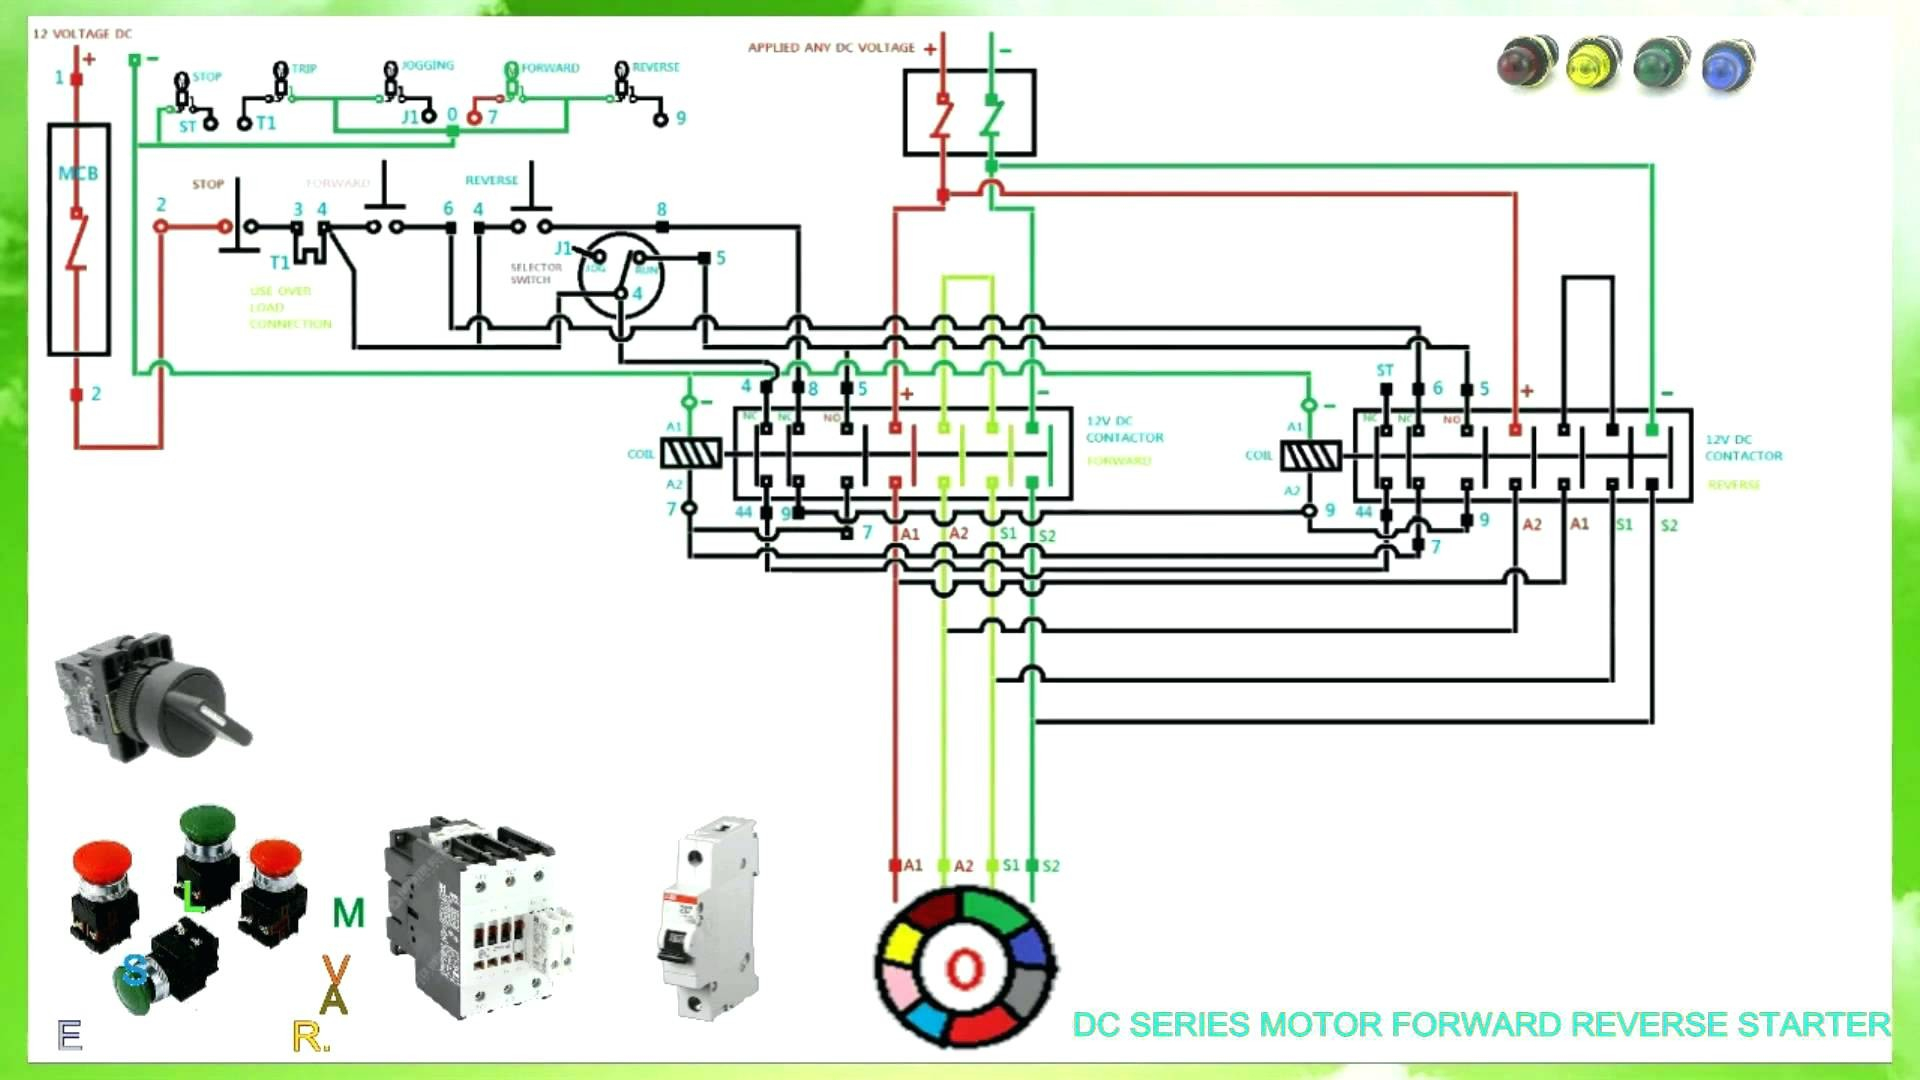 3Ph Motor Forward And Reverse Control Wiring Schematics | Wiring Diagram - Single Phase Motor Wiring Diagram Forward Reverse